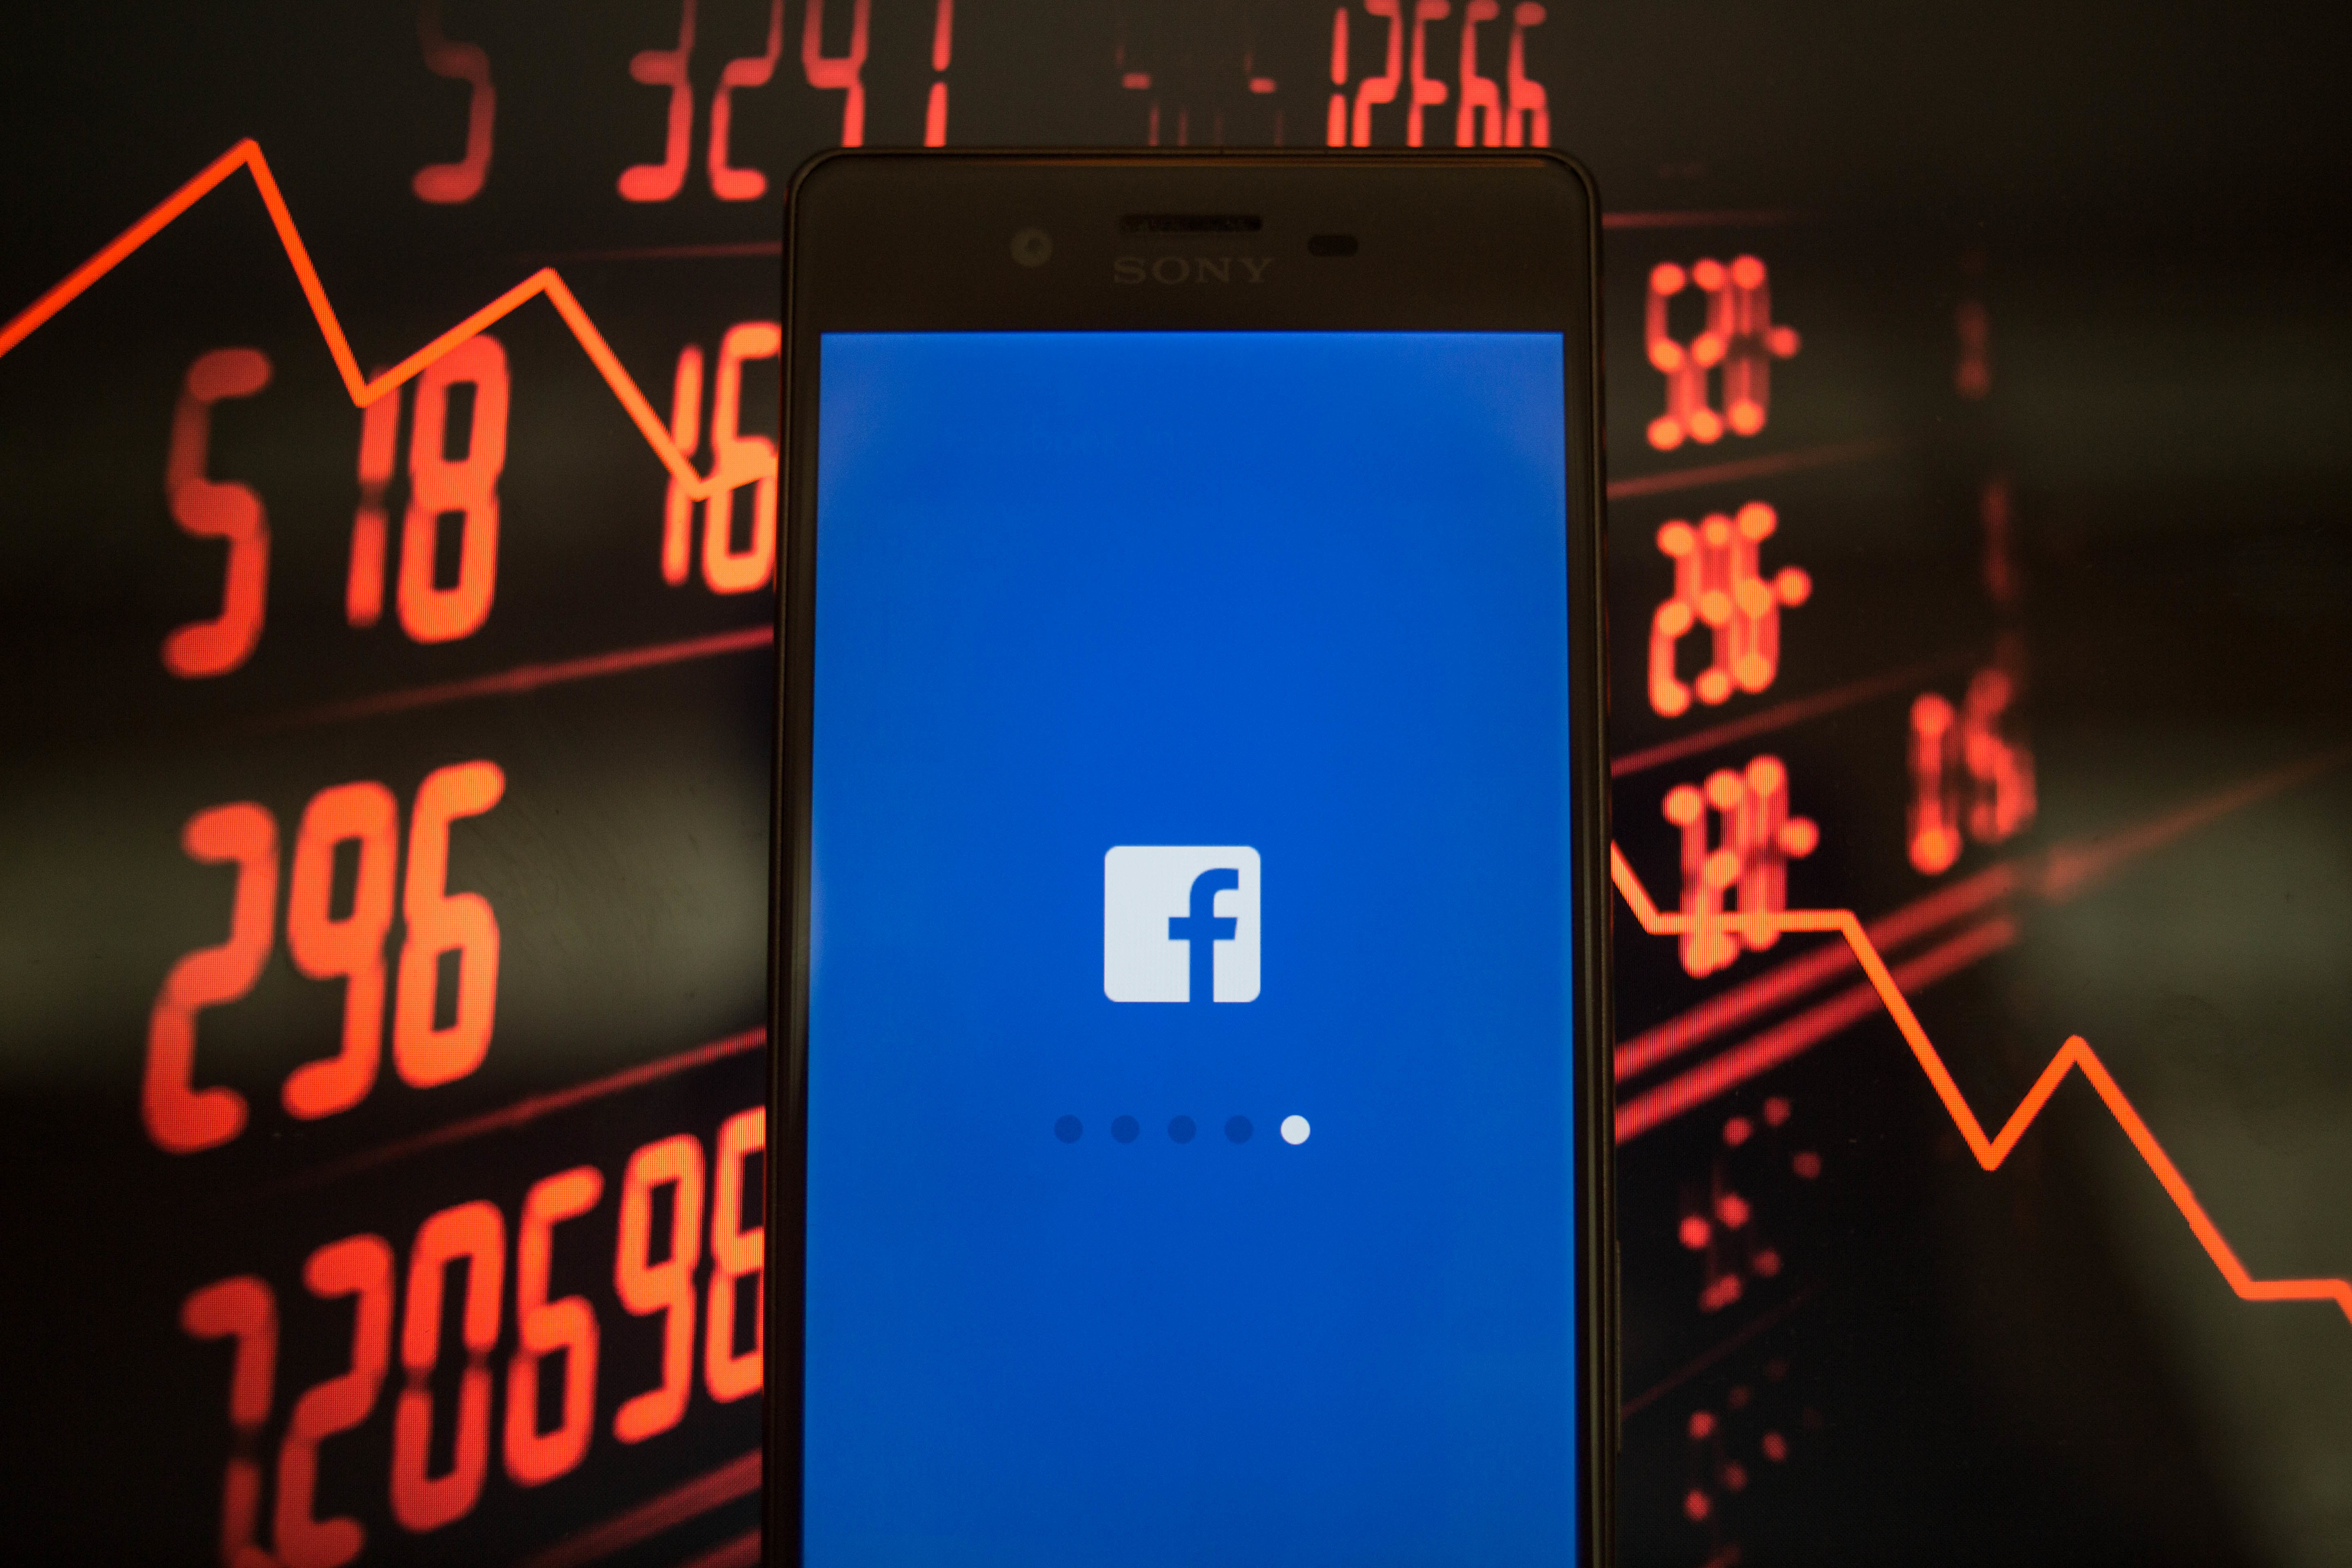 A smartphone displays the Facebook application with a